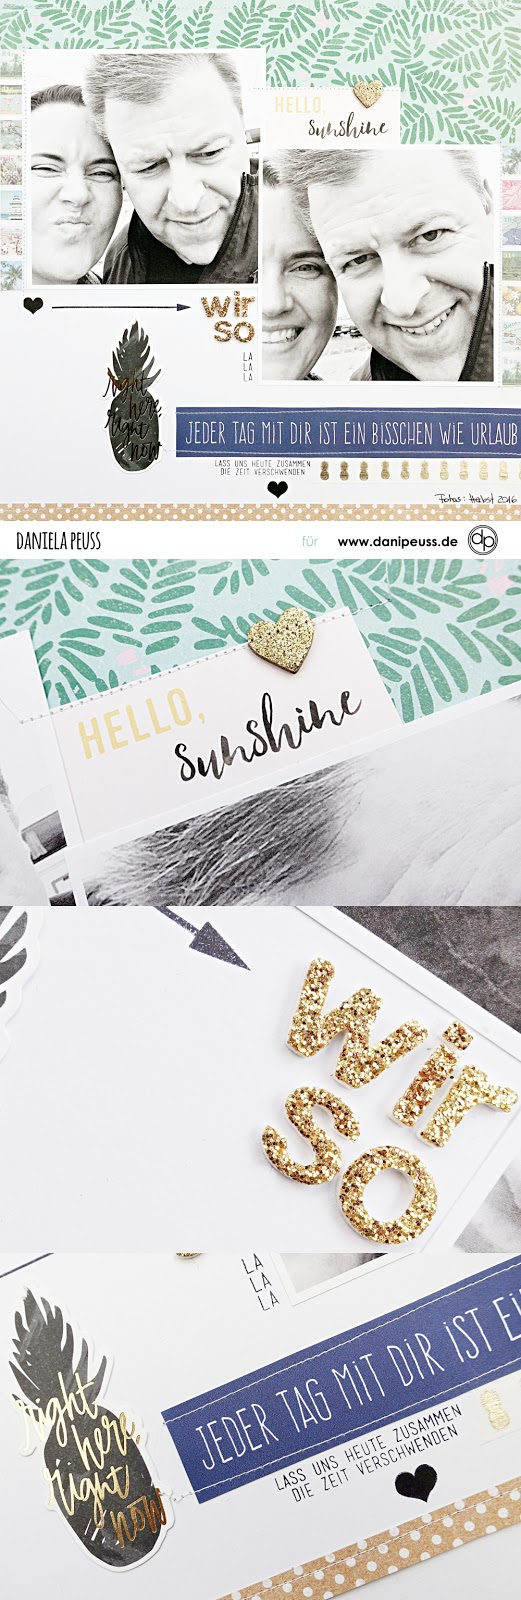 http://danipeuss.blogspot.com/2017/04/3-scrapbook-layouts-mit-dem-aprilkit.html